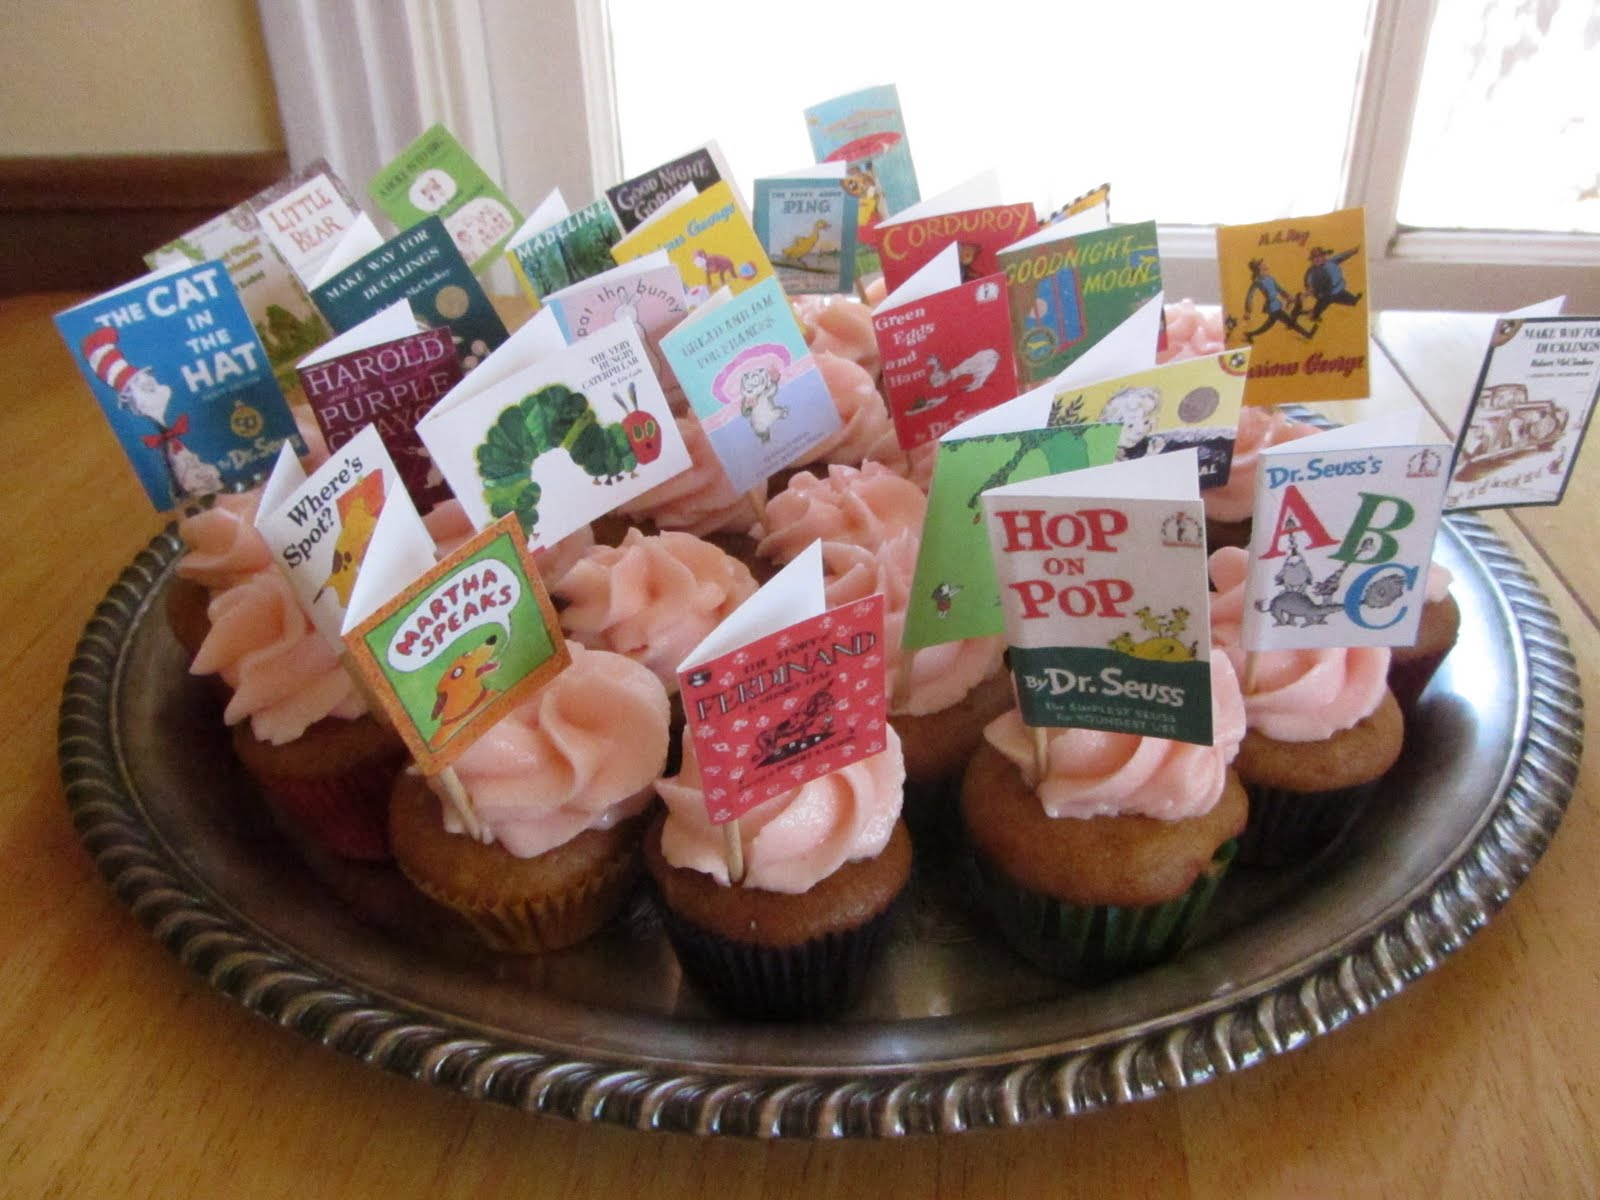 7 Photos of Book Themed Baby Shower Cupcakes